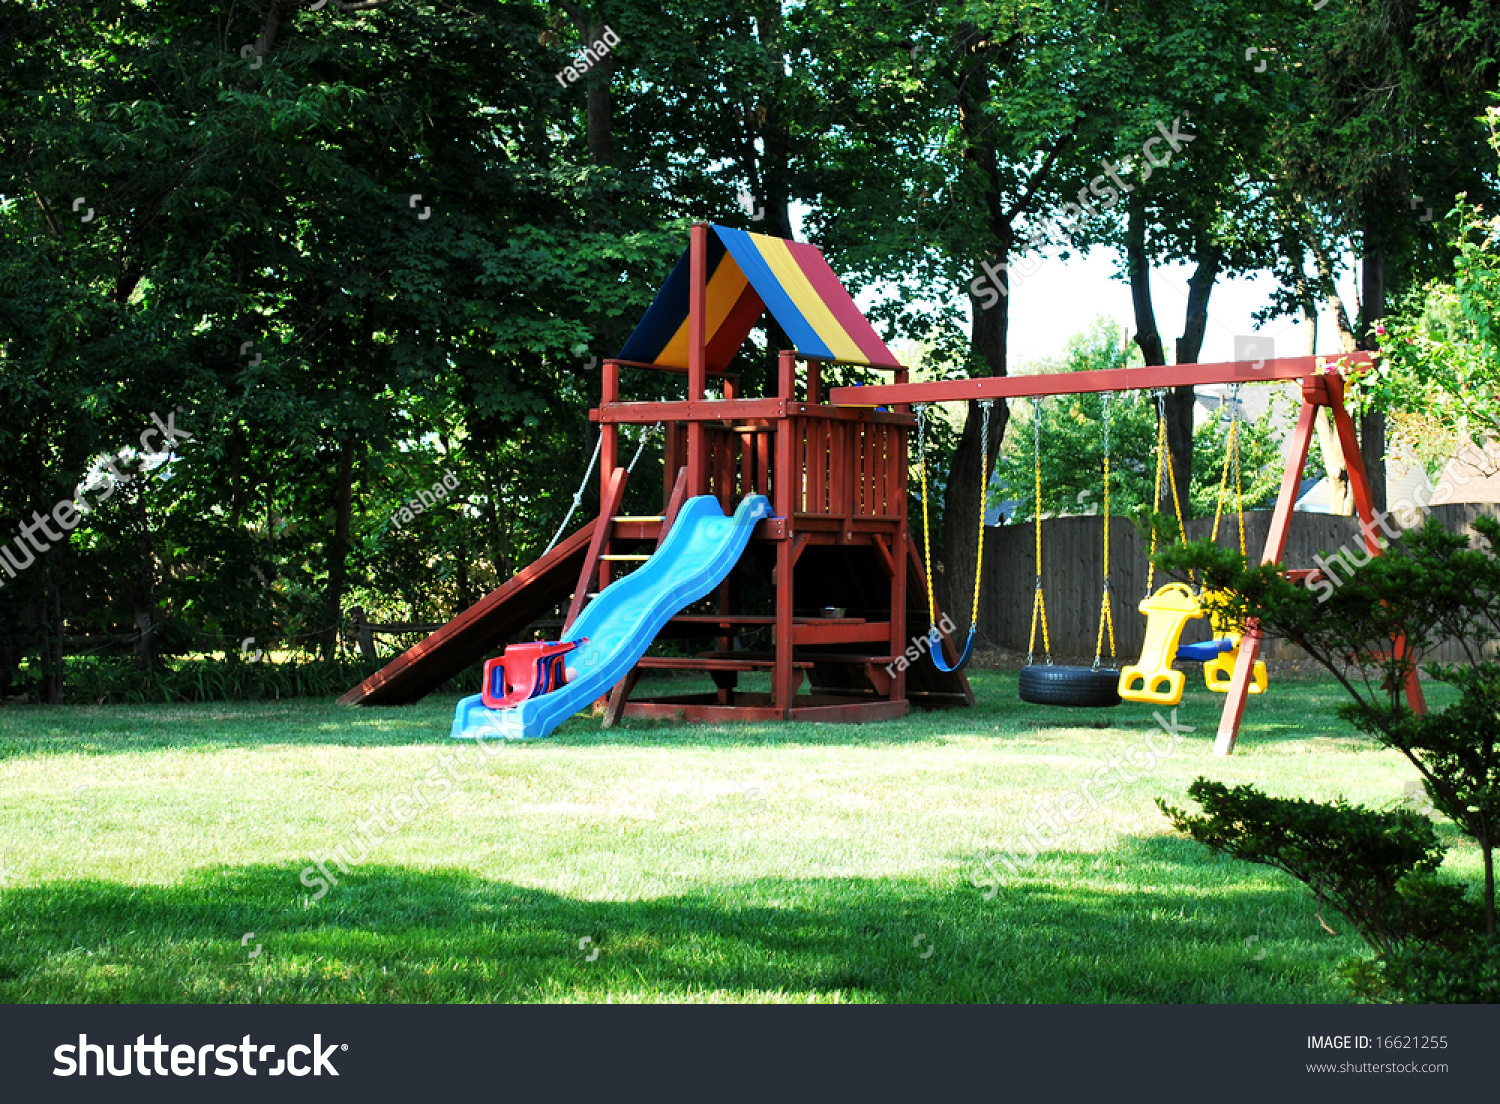 Backyard Jungle Gym Made Wood Slide Stock Photo - Backyard jungle gyms